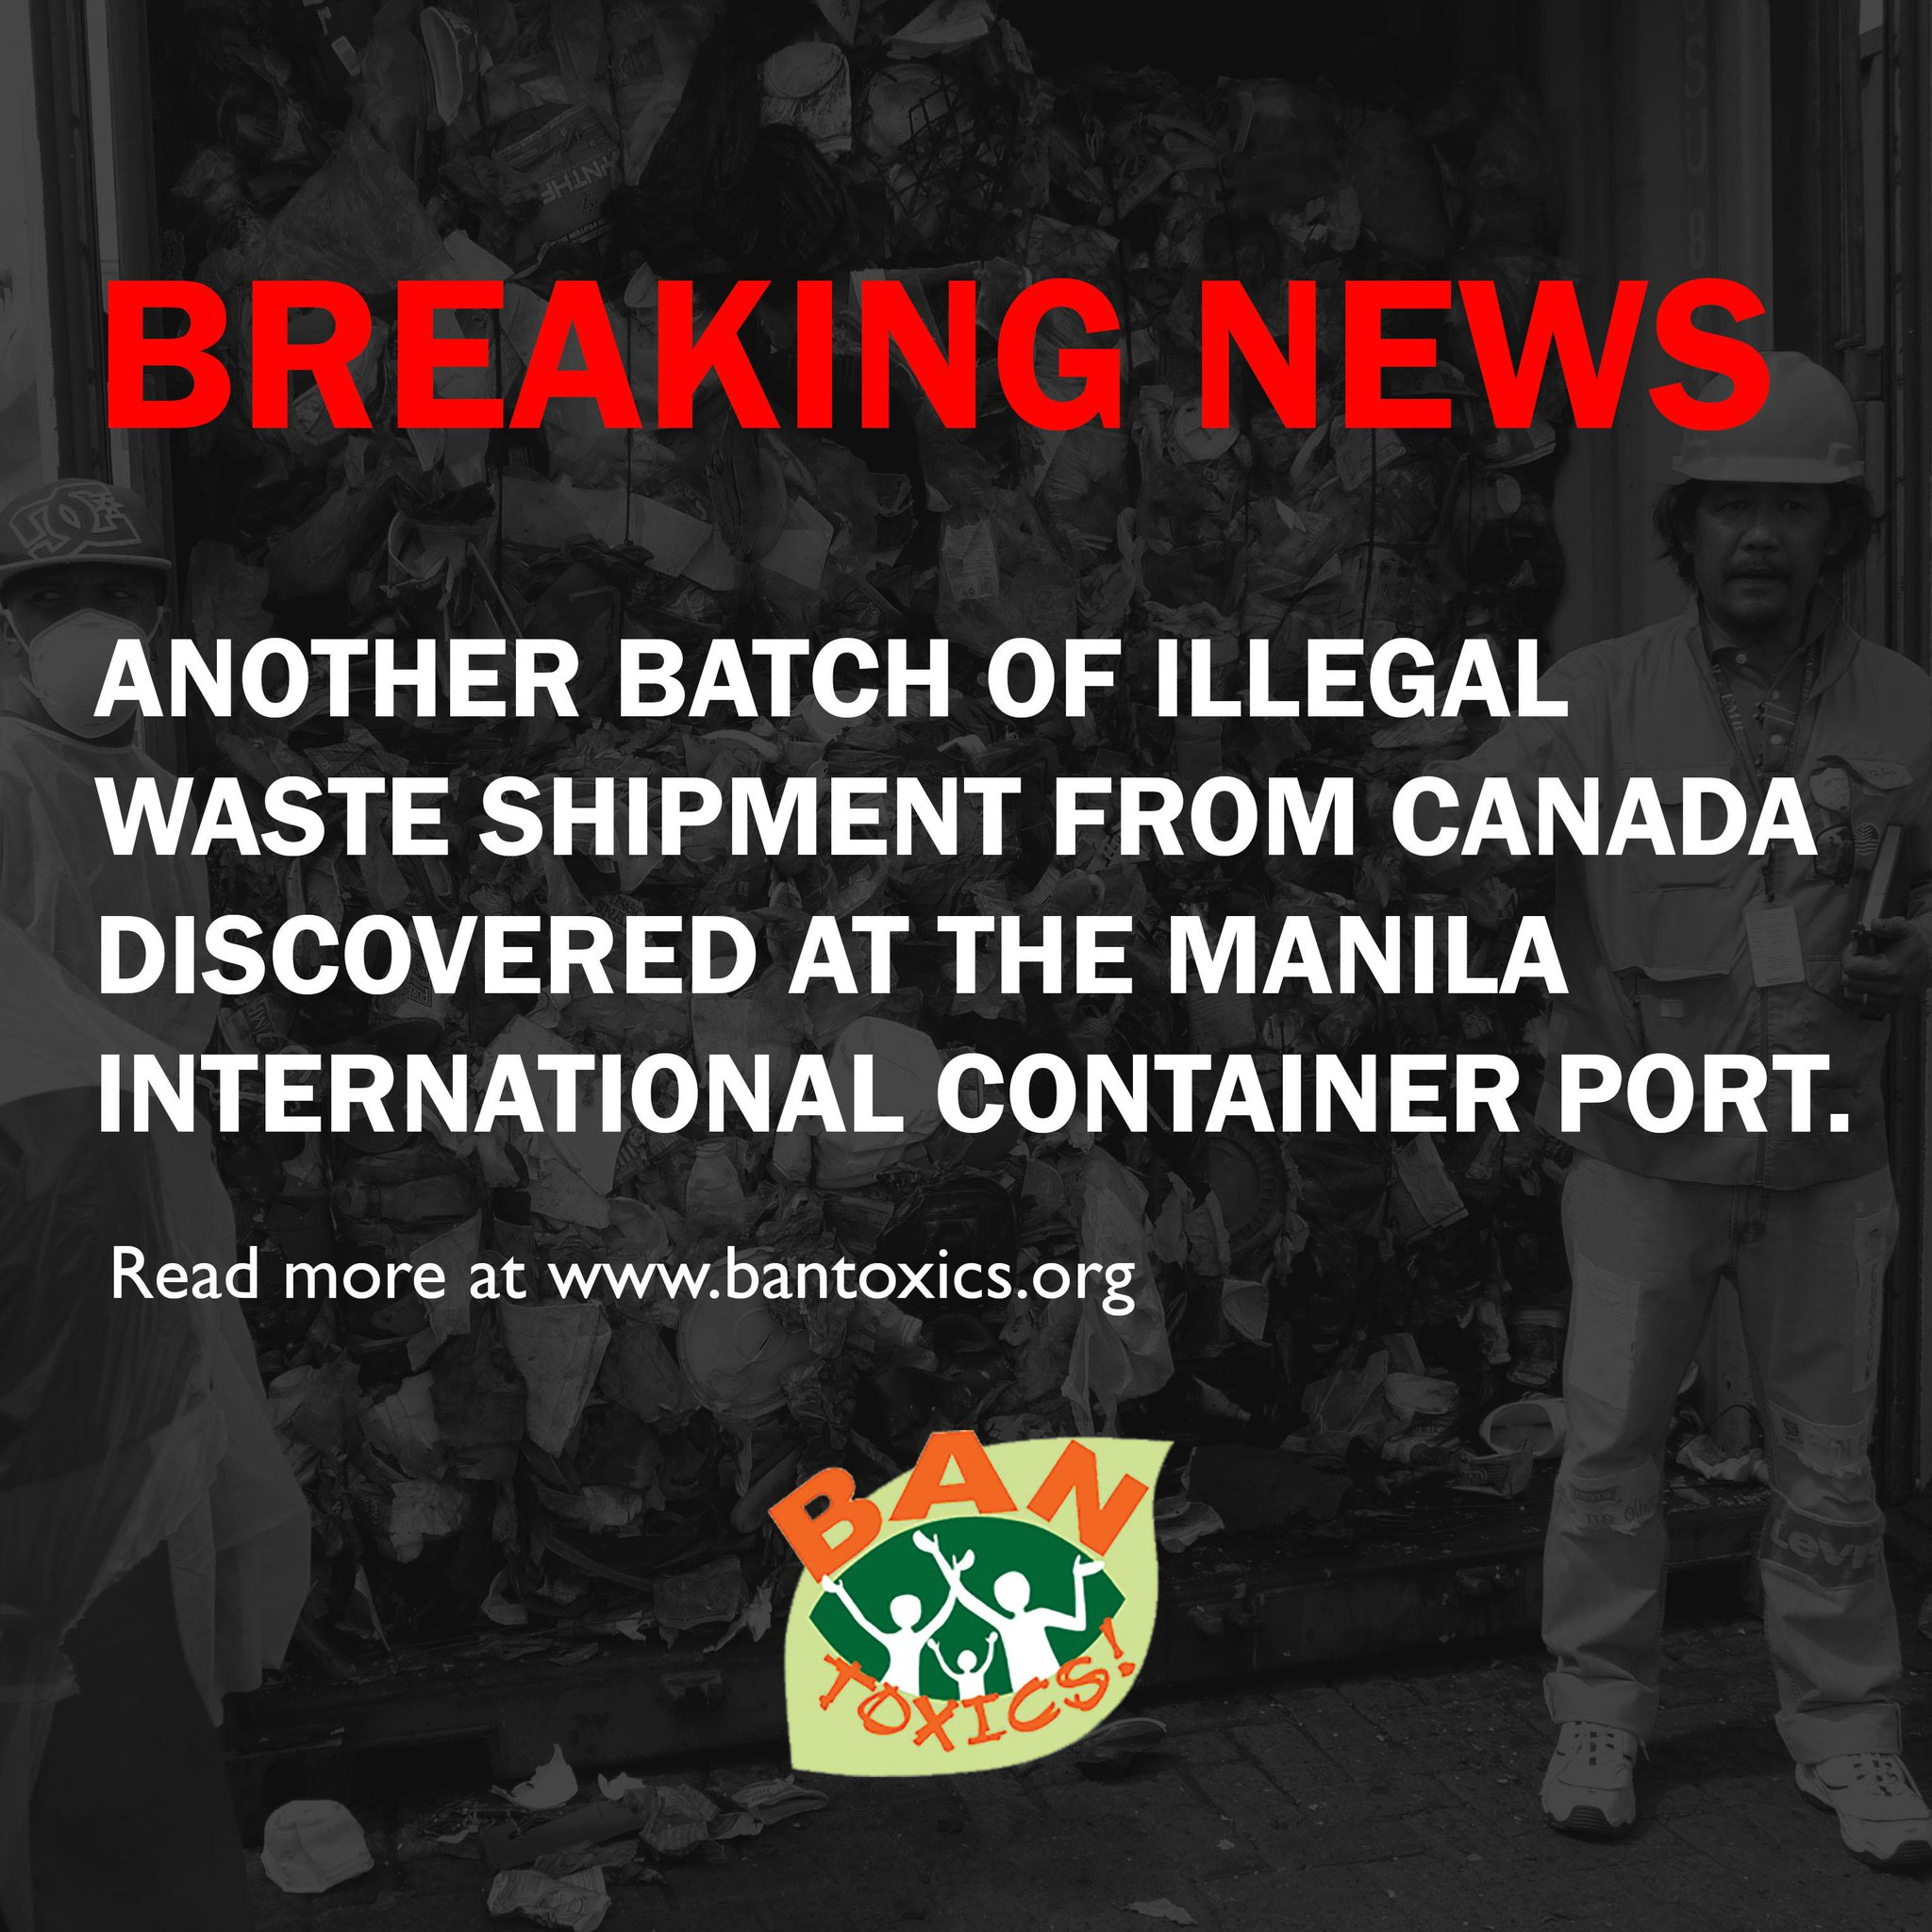 More Canadian Garbage Found Illegally Dumped in the Philippines. Find out more at http://t.co/SfX9mz0wBw #CantTrashUs http://t.co/Uqu3EEKDvg